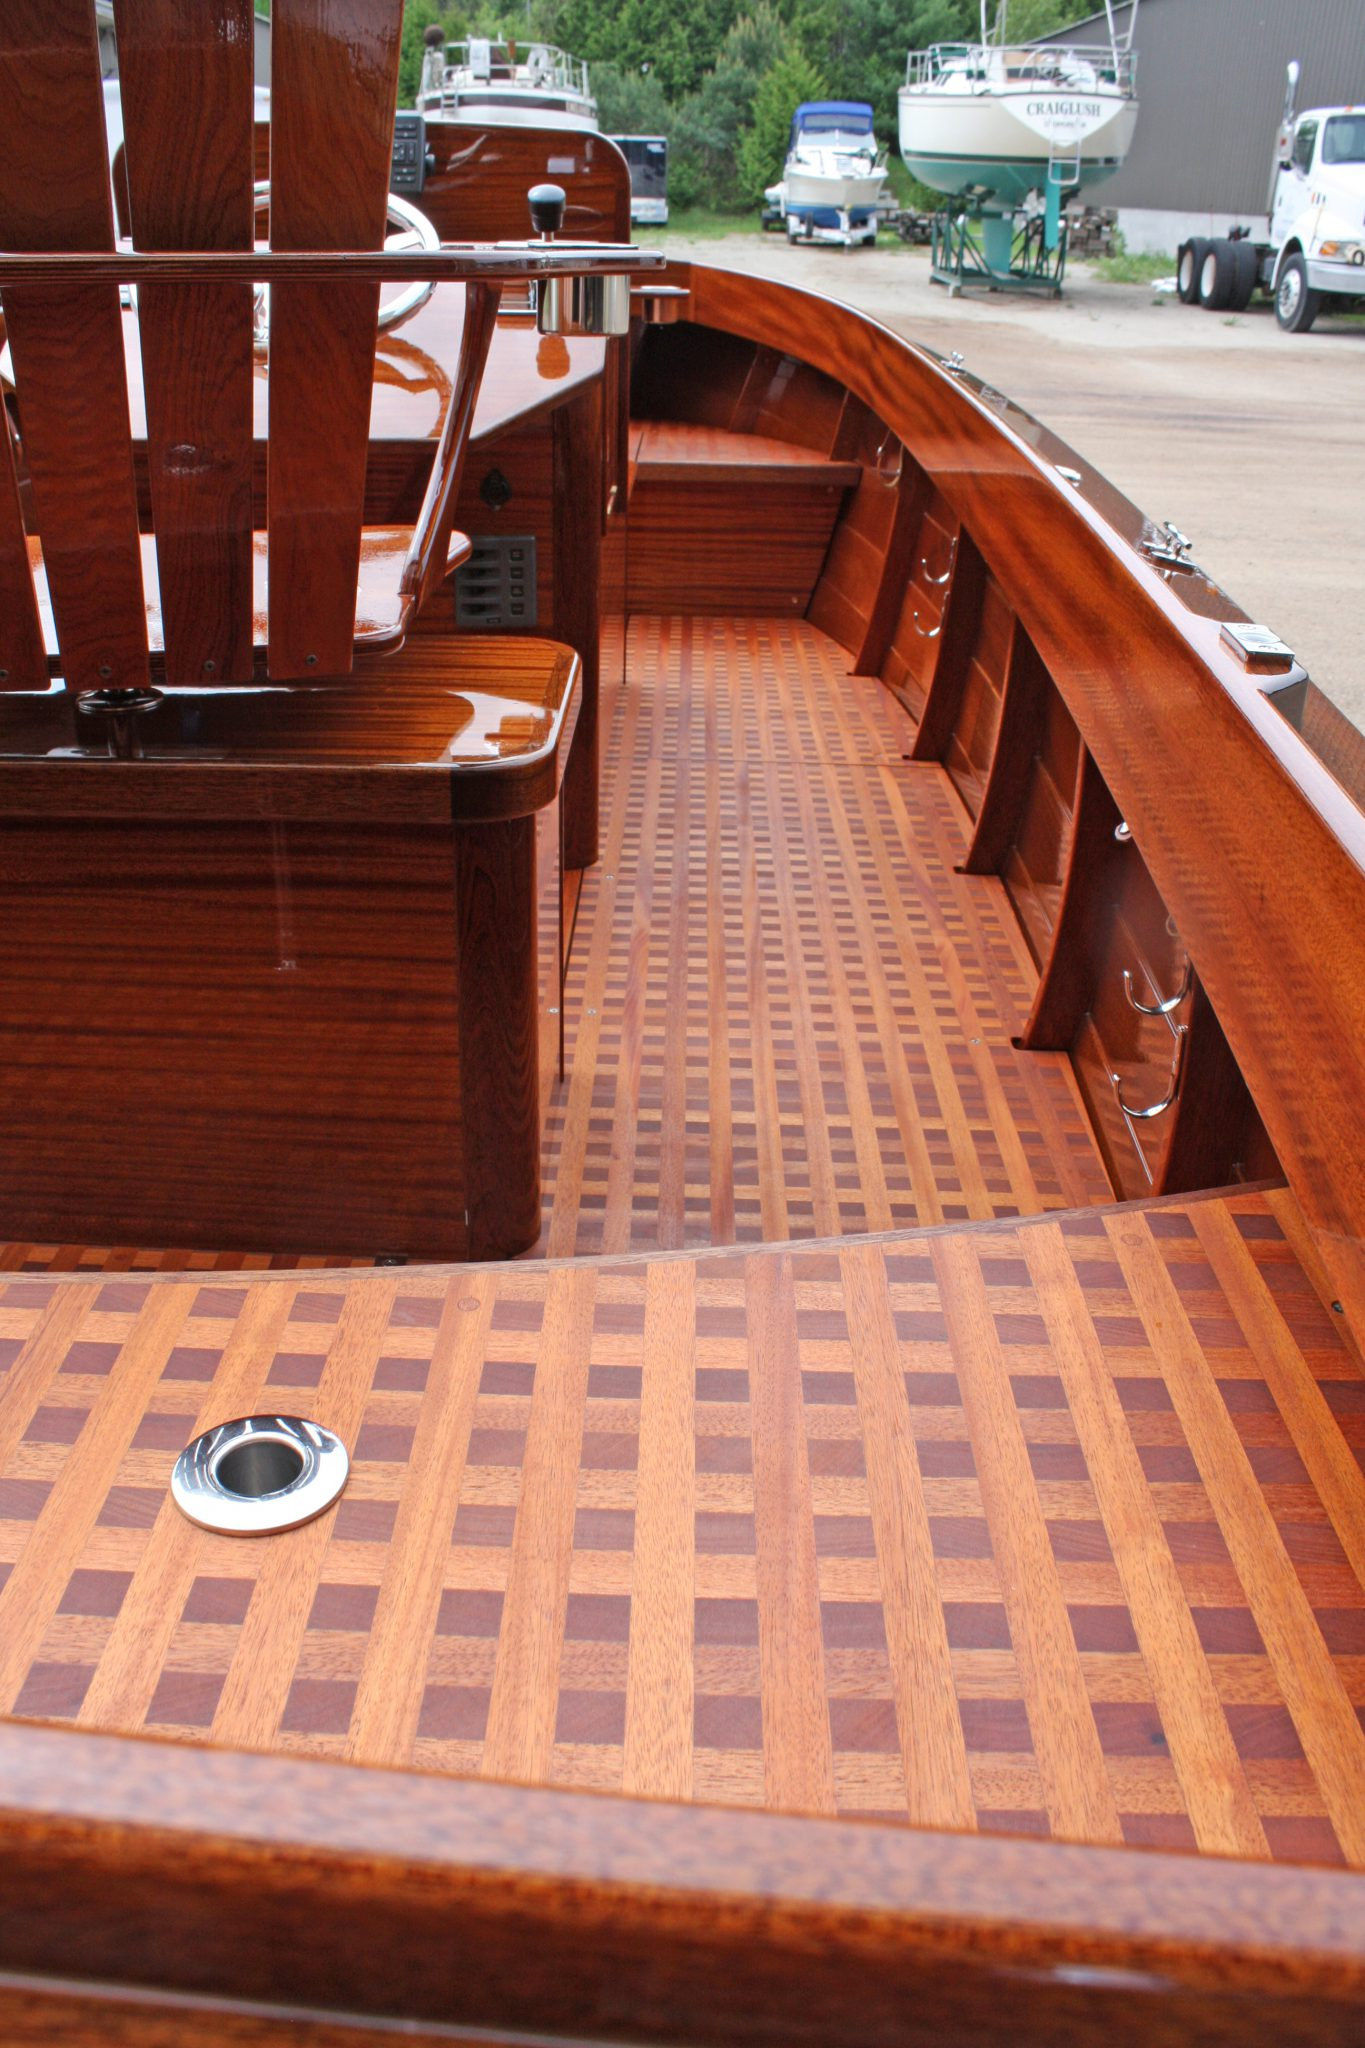 Mahogany grating on floor of Geepy